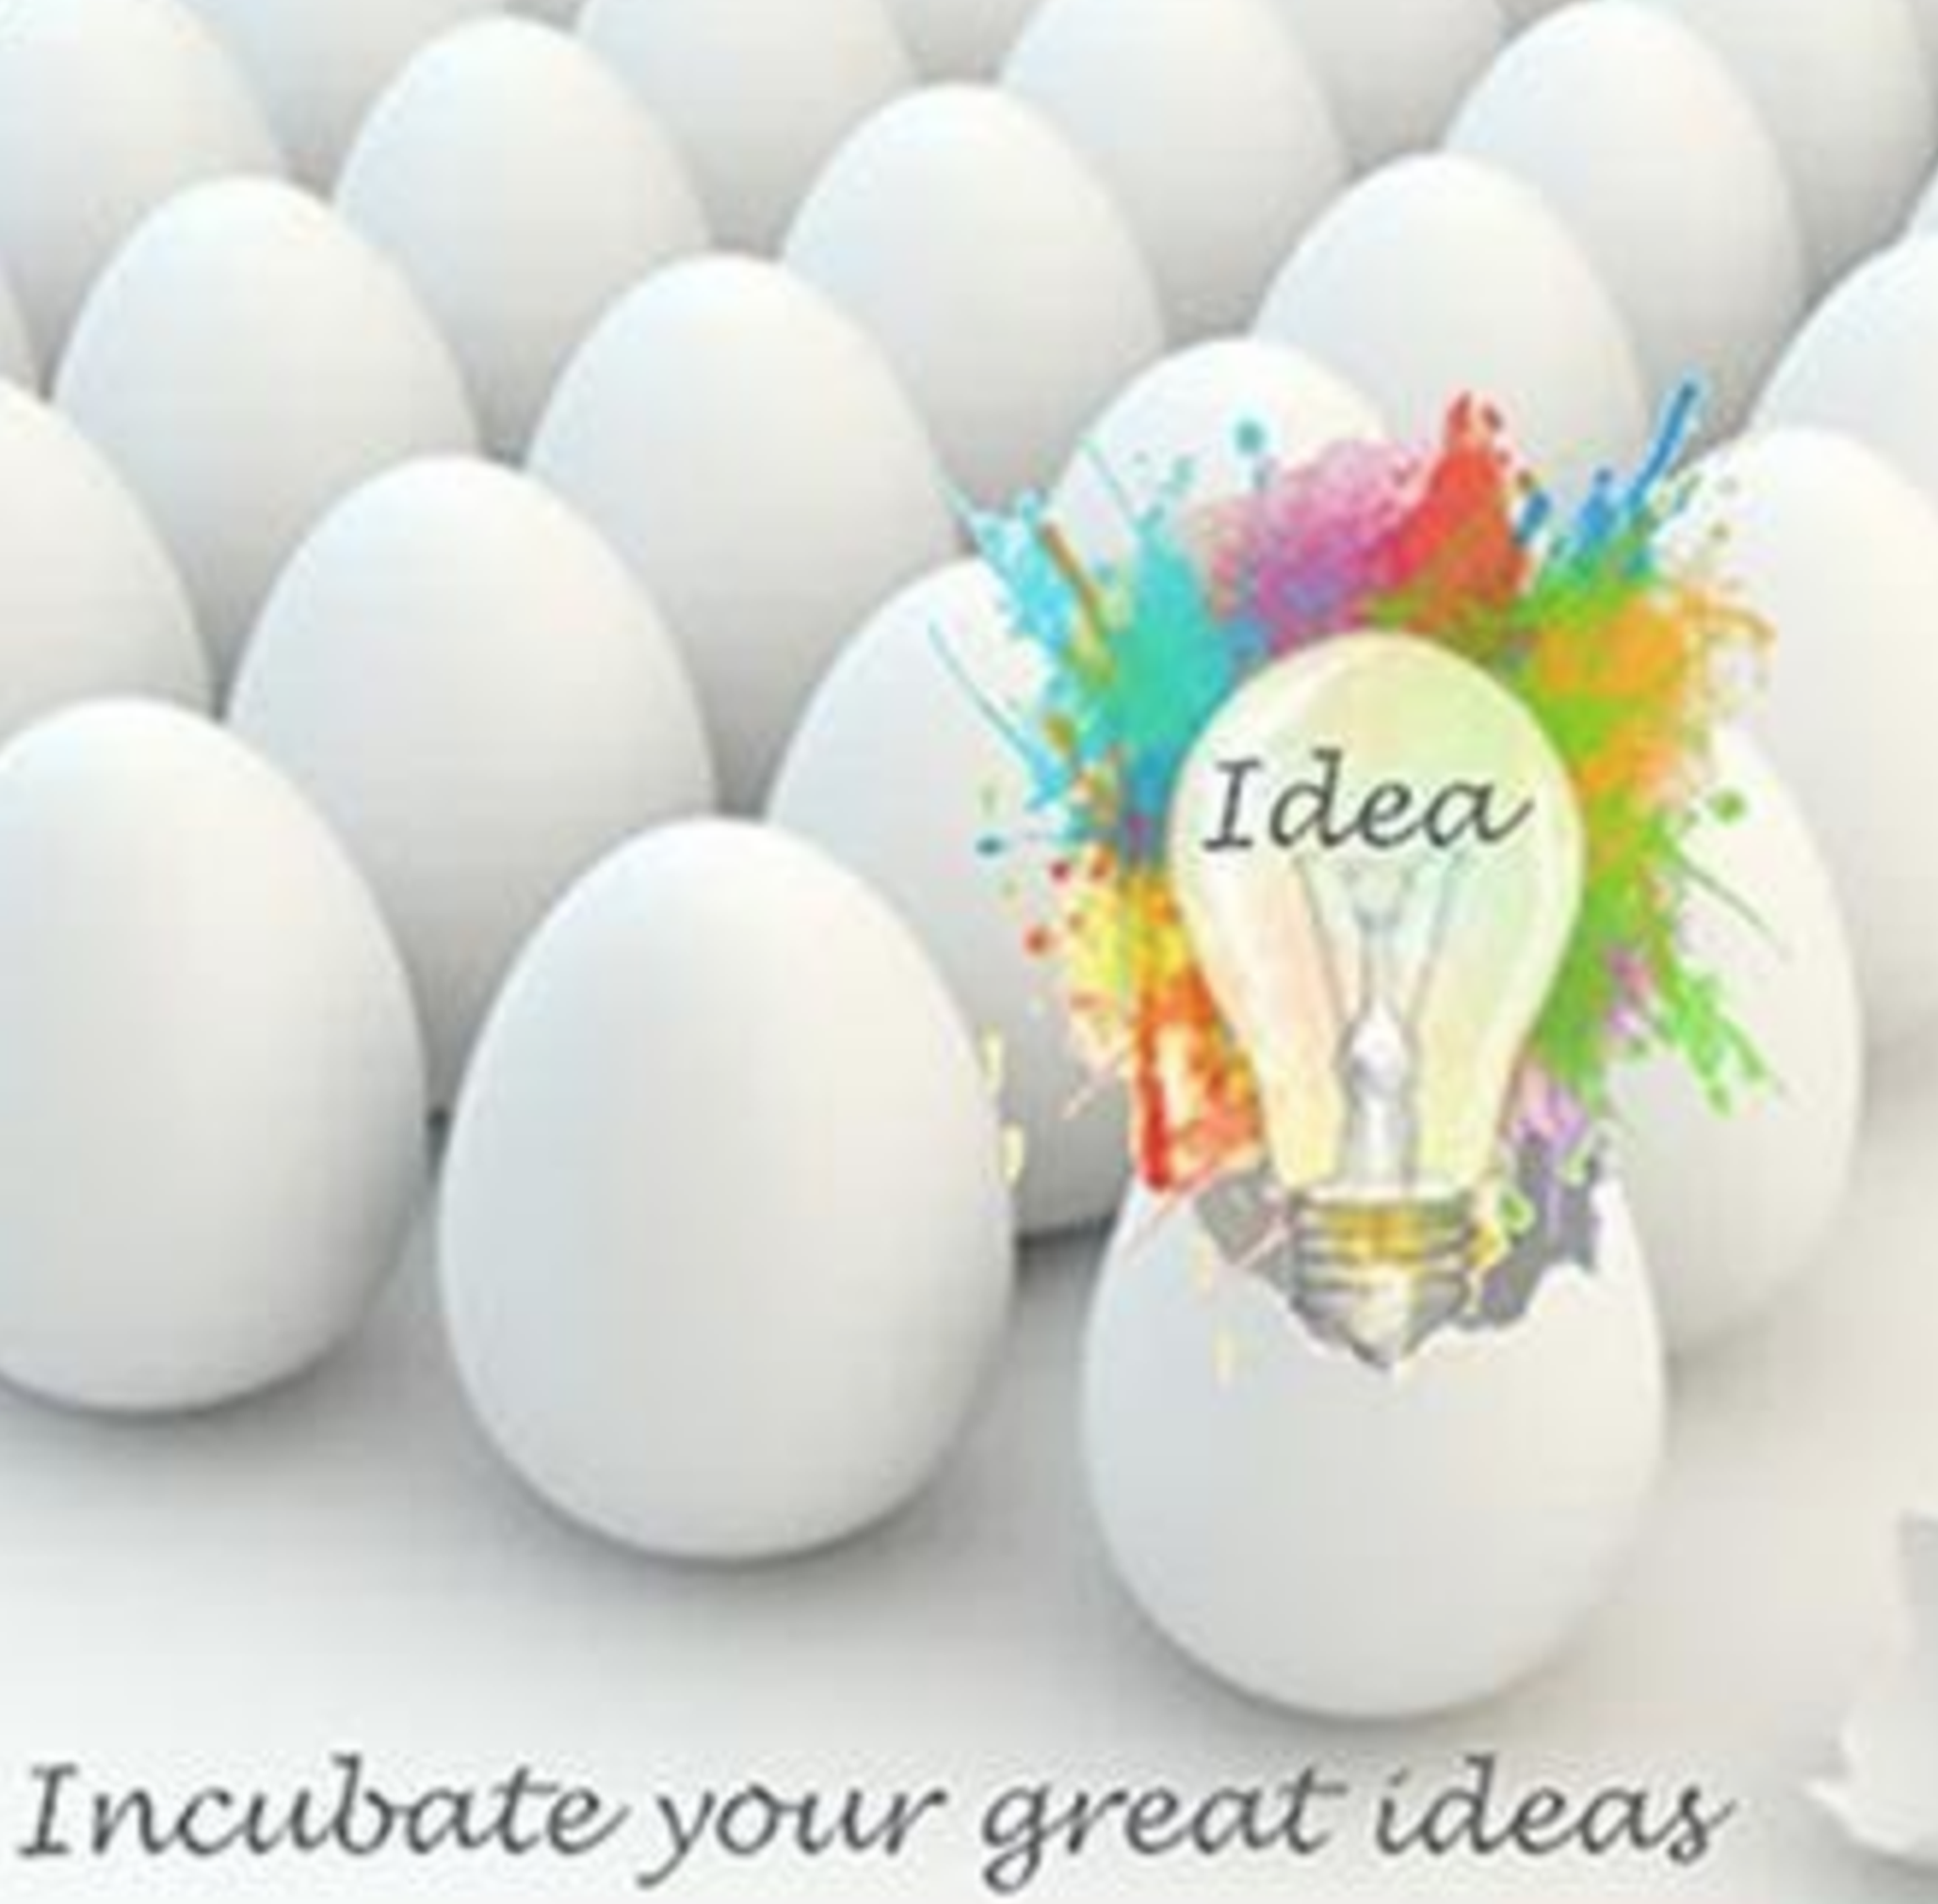 incubate your ideas